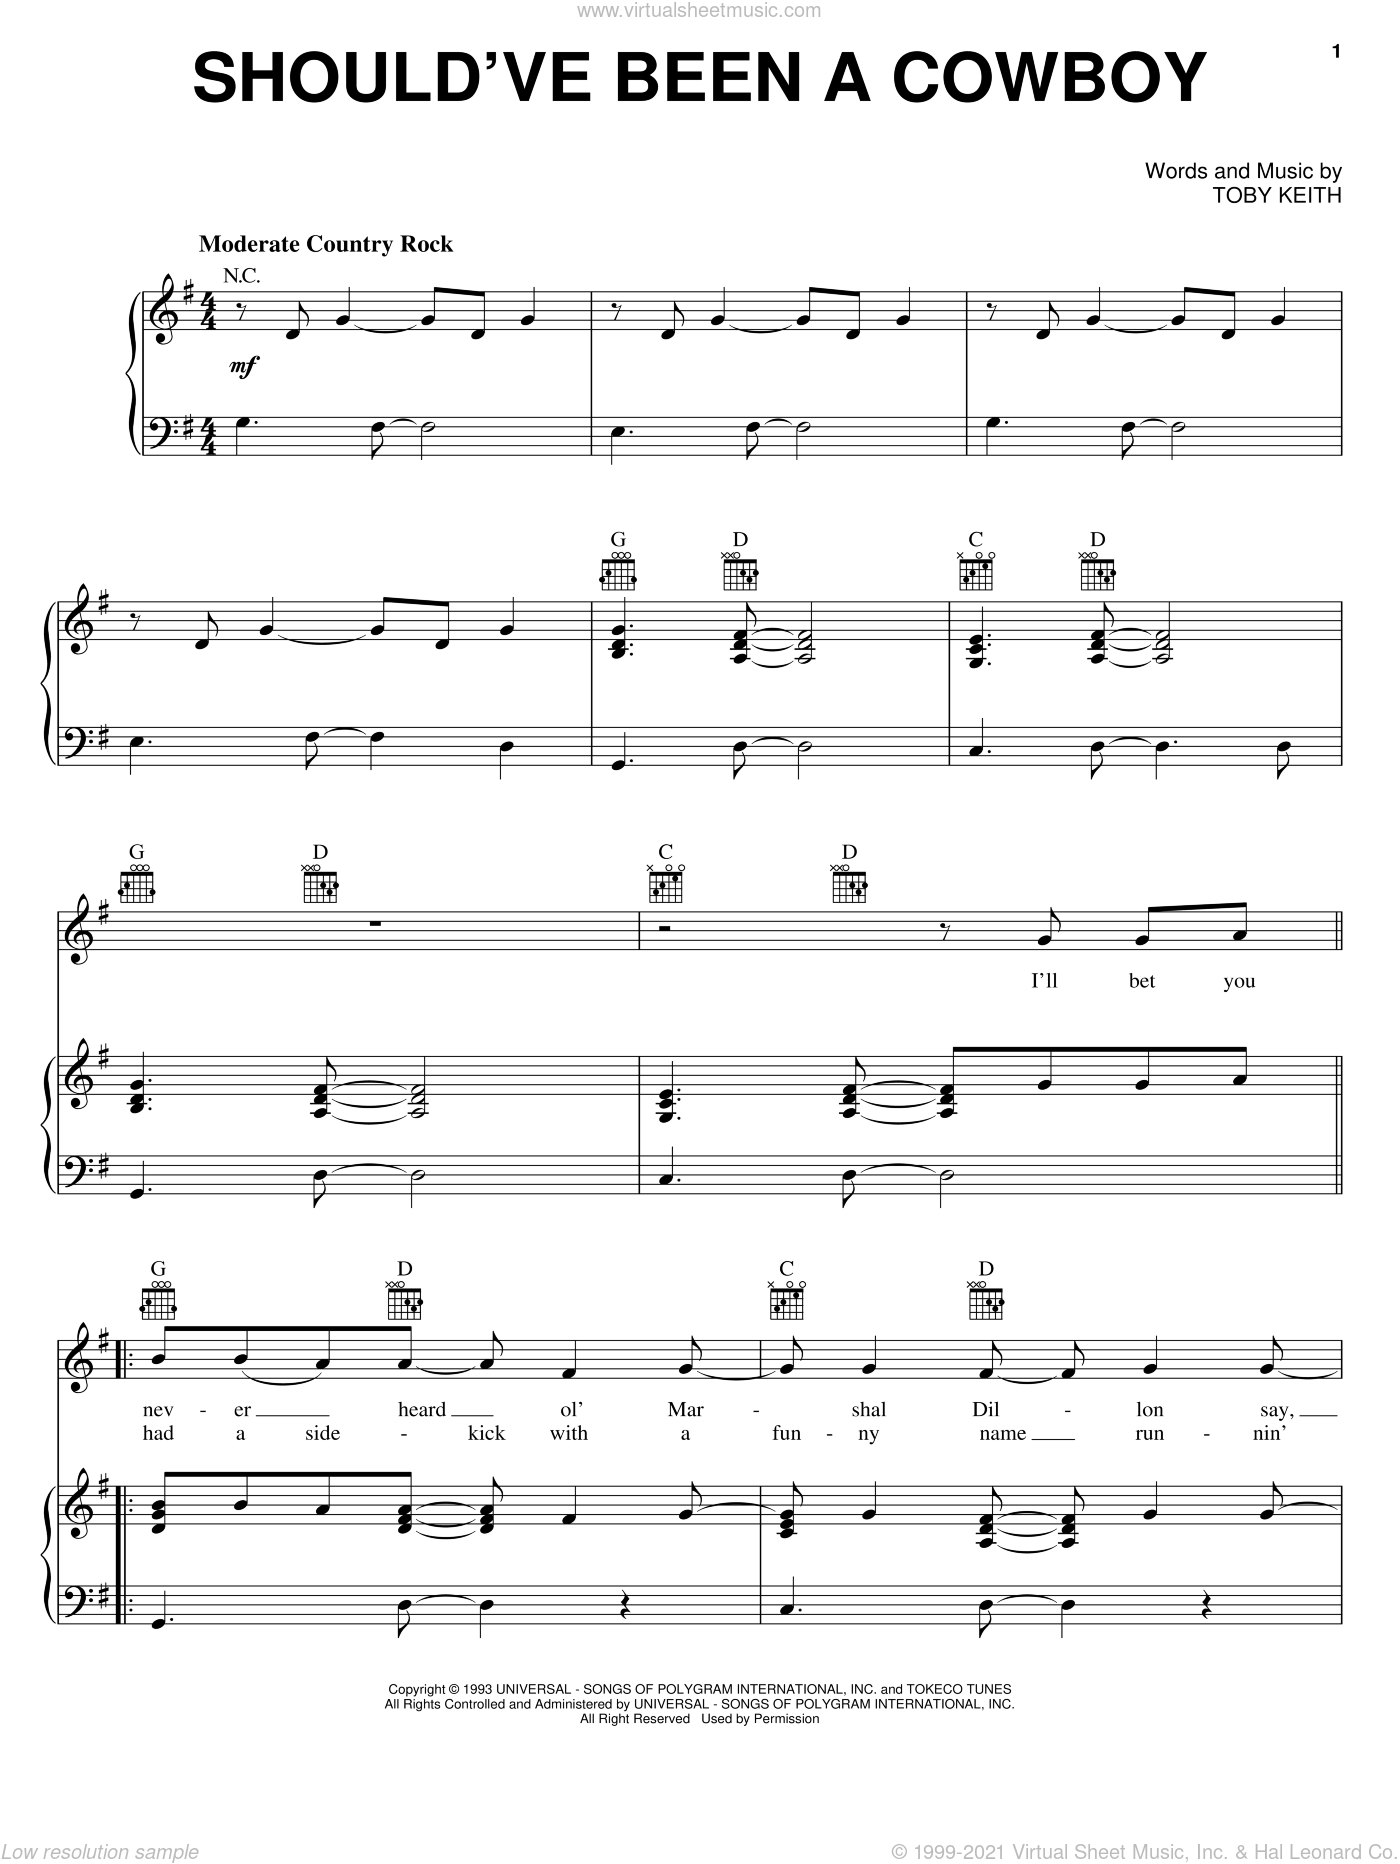 Should've Been A Cowboy sheet music for voice, piano or guitar by Toby Keith, intermediate skill level